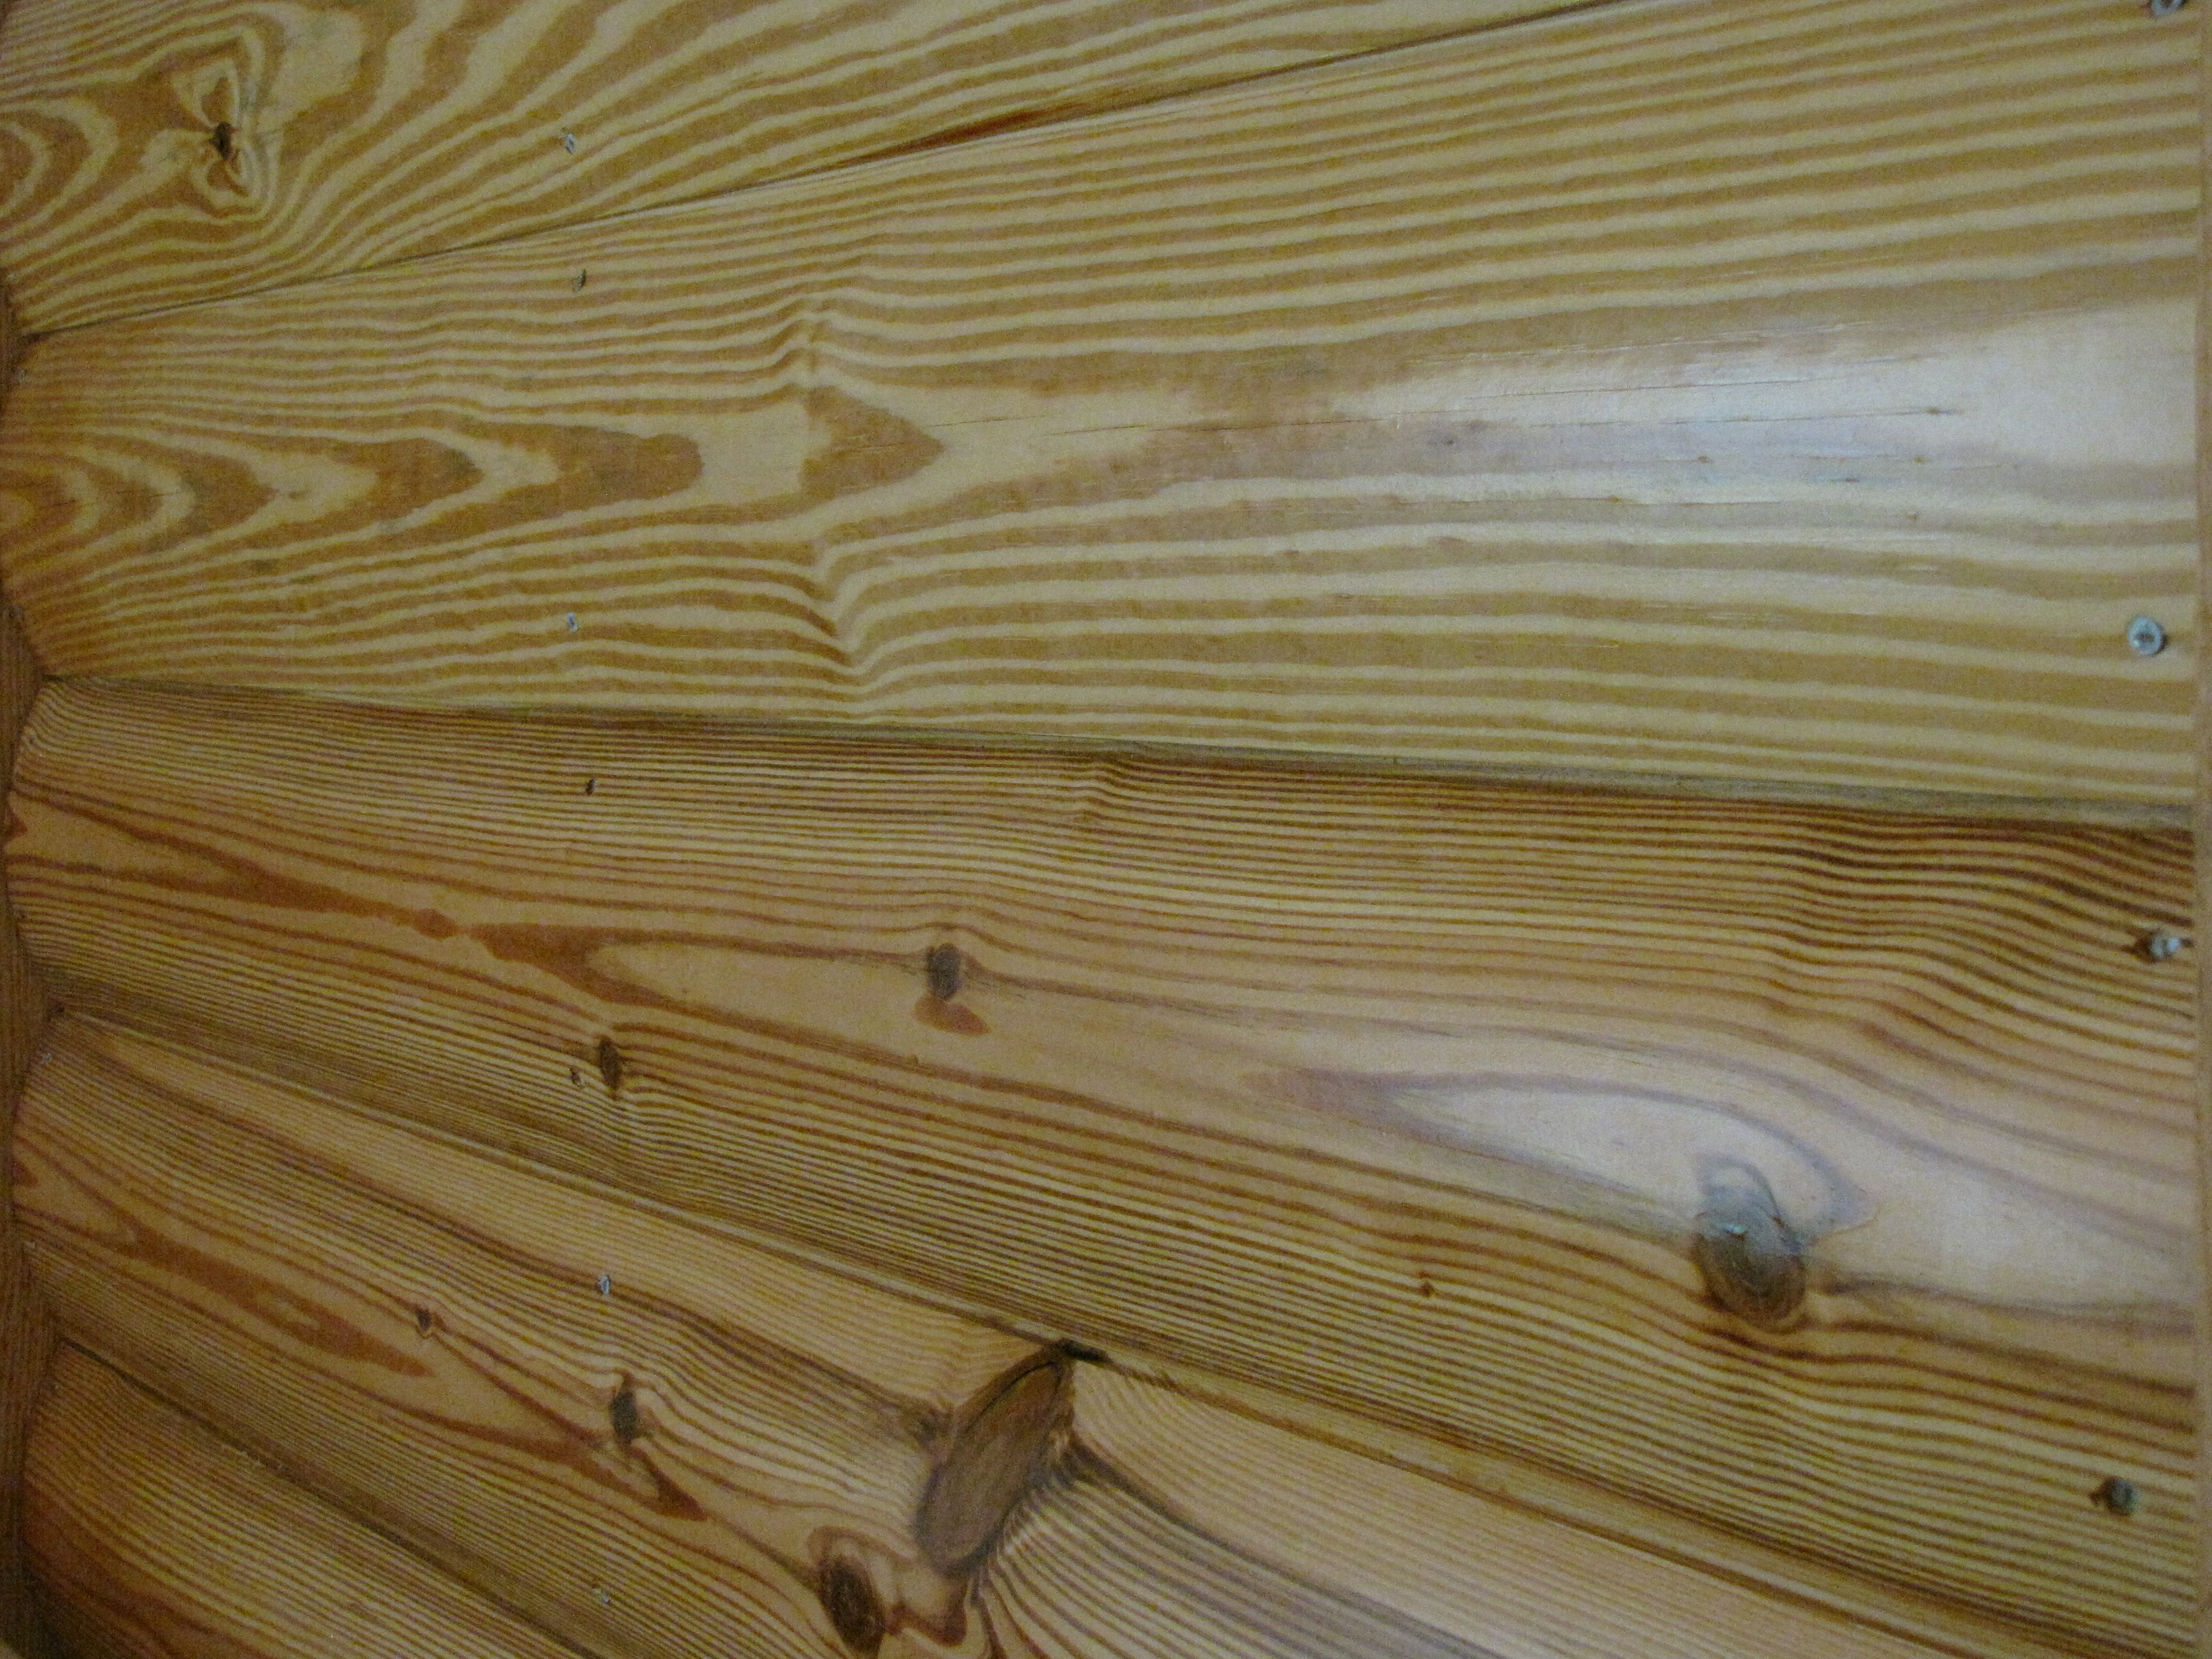 Southern Pine Log Siding With Clear Coat For Interior Use P 251